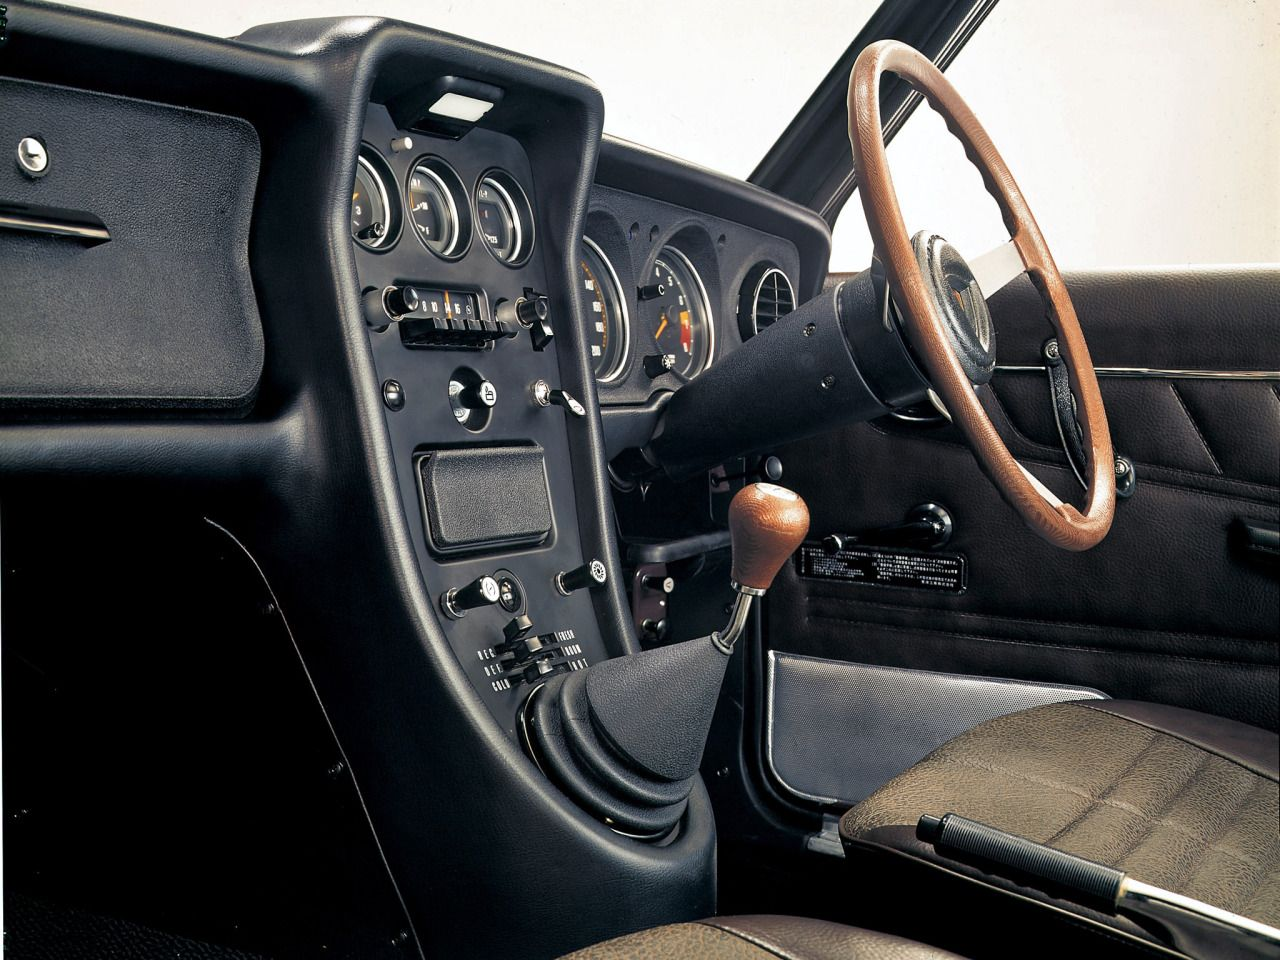 Car interior maintenance - 1968 Mazda Familia Maintenance Restoration Of Old Vintage Vehicles The Material For New